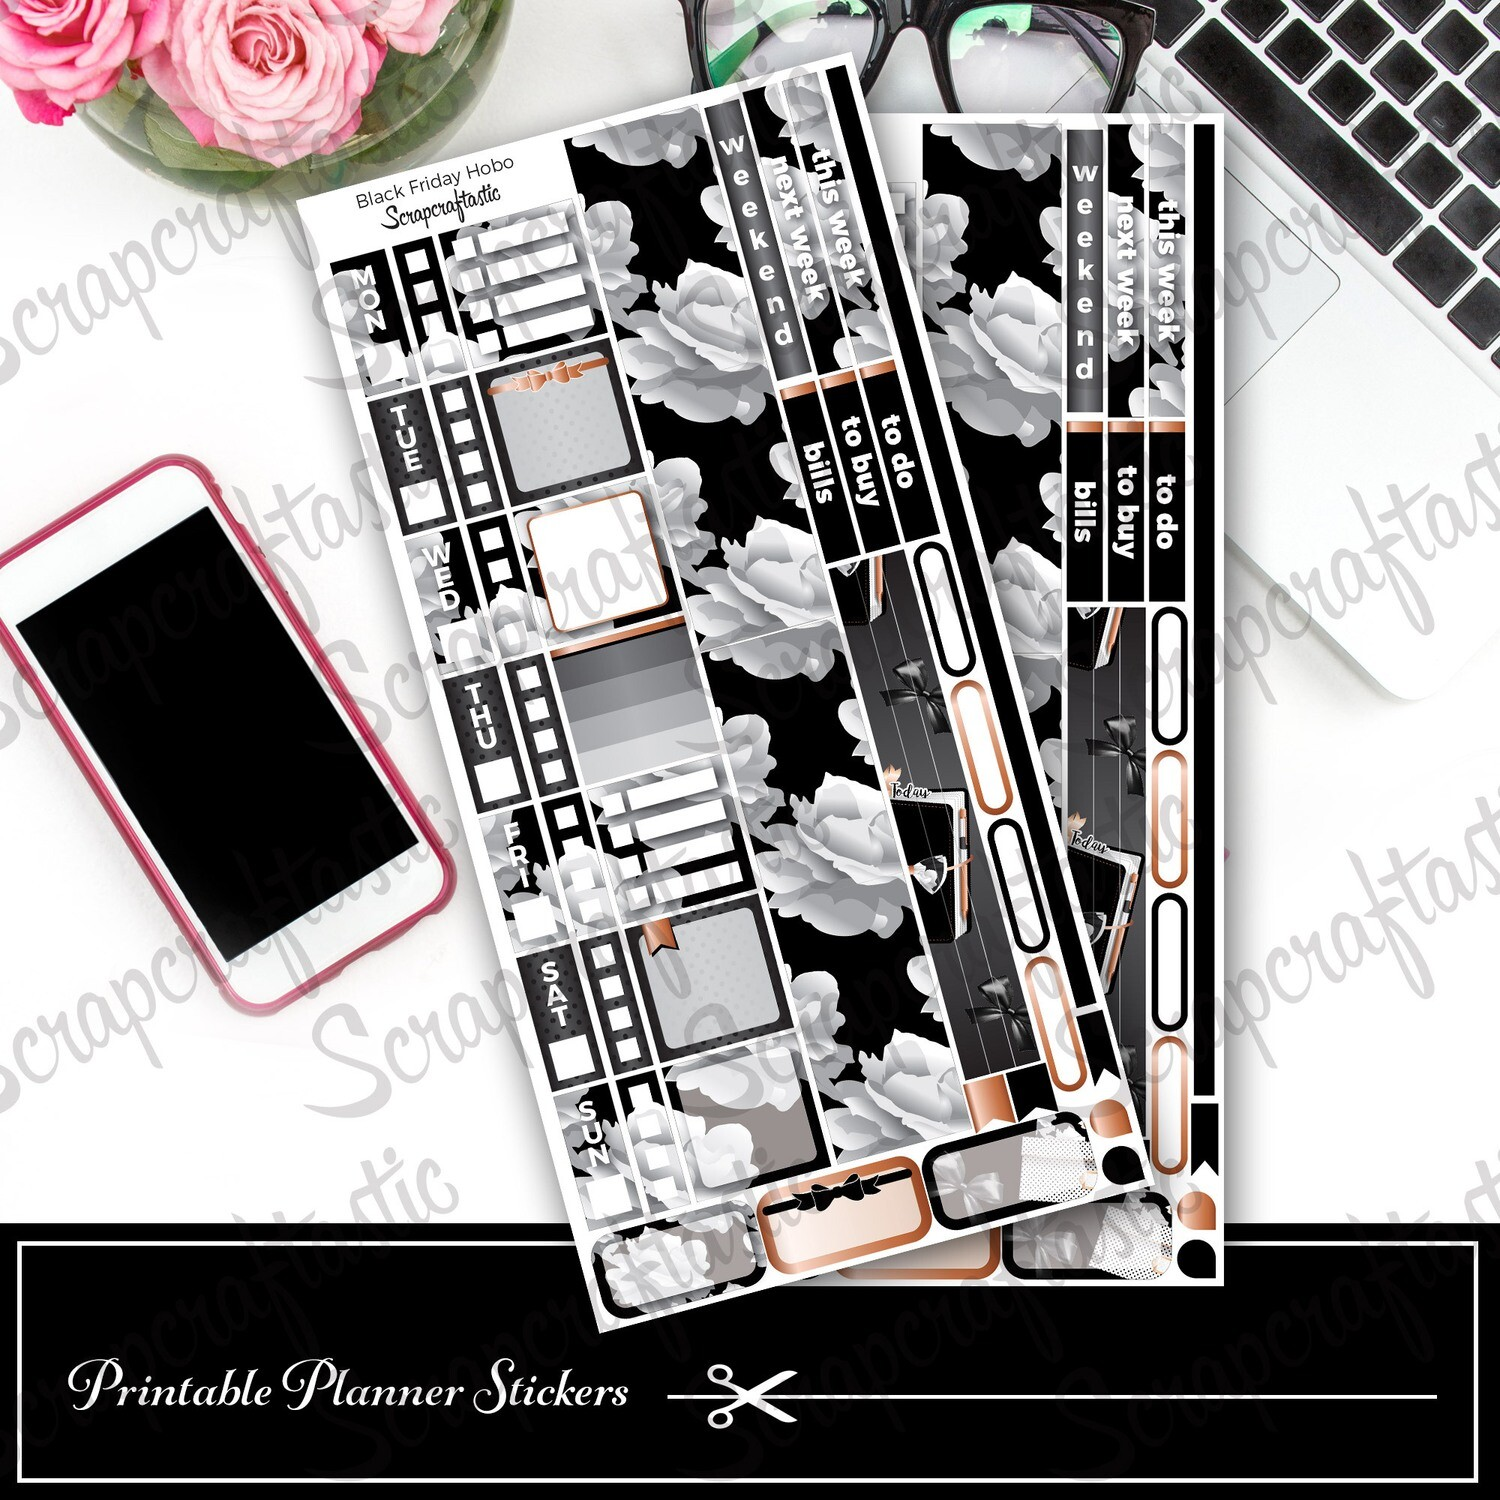 Black Friday Hobo Printable Planner Stickers